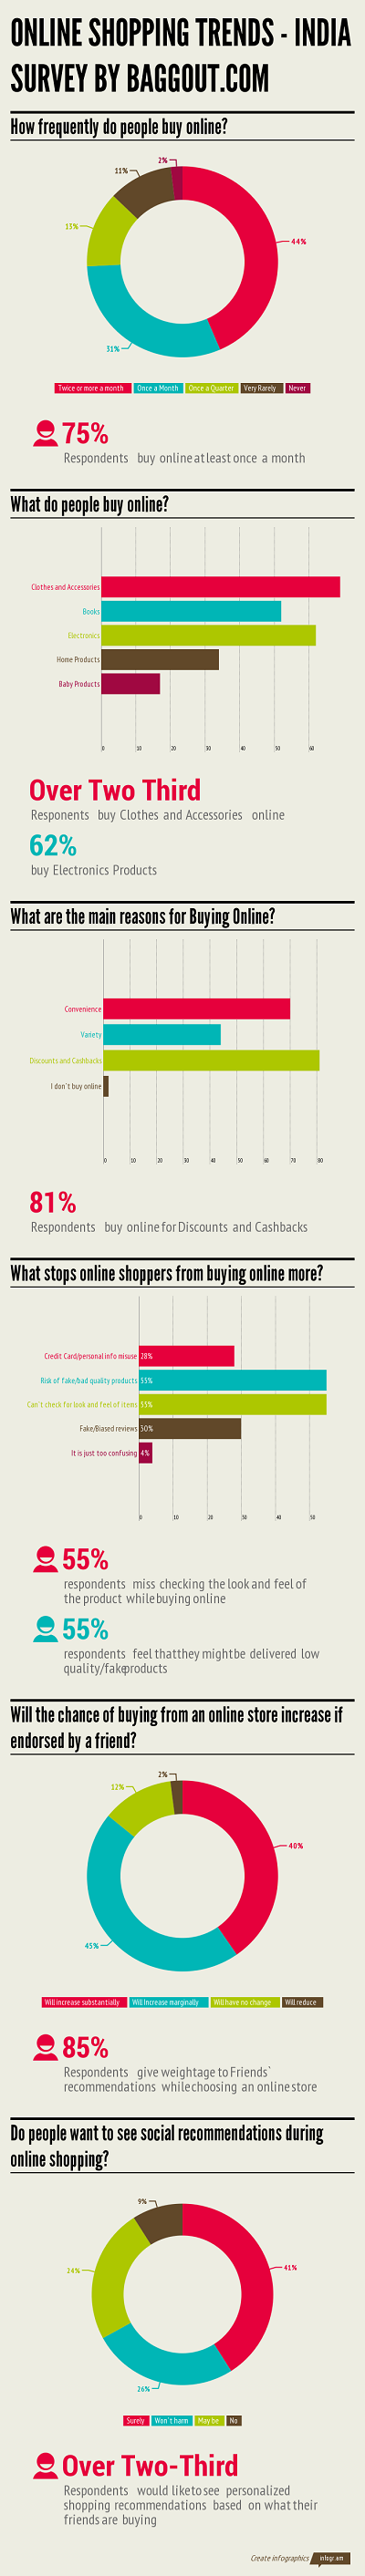 Trends in Online Shopping